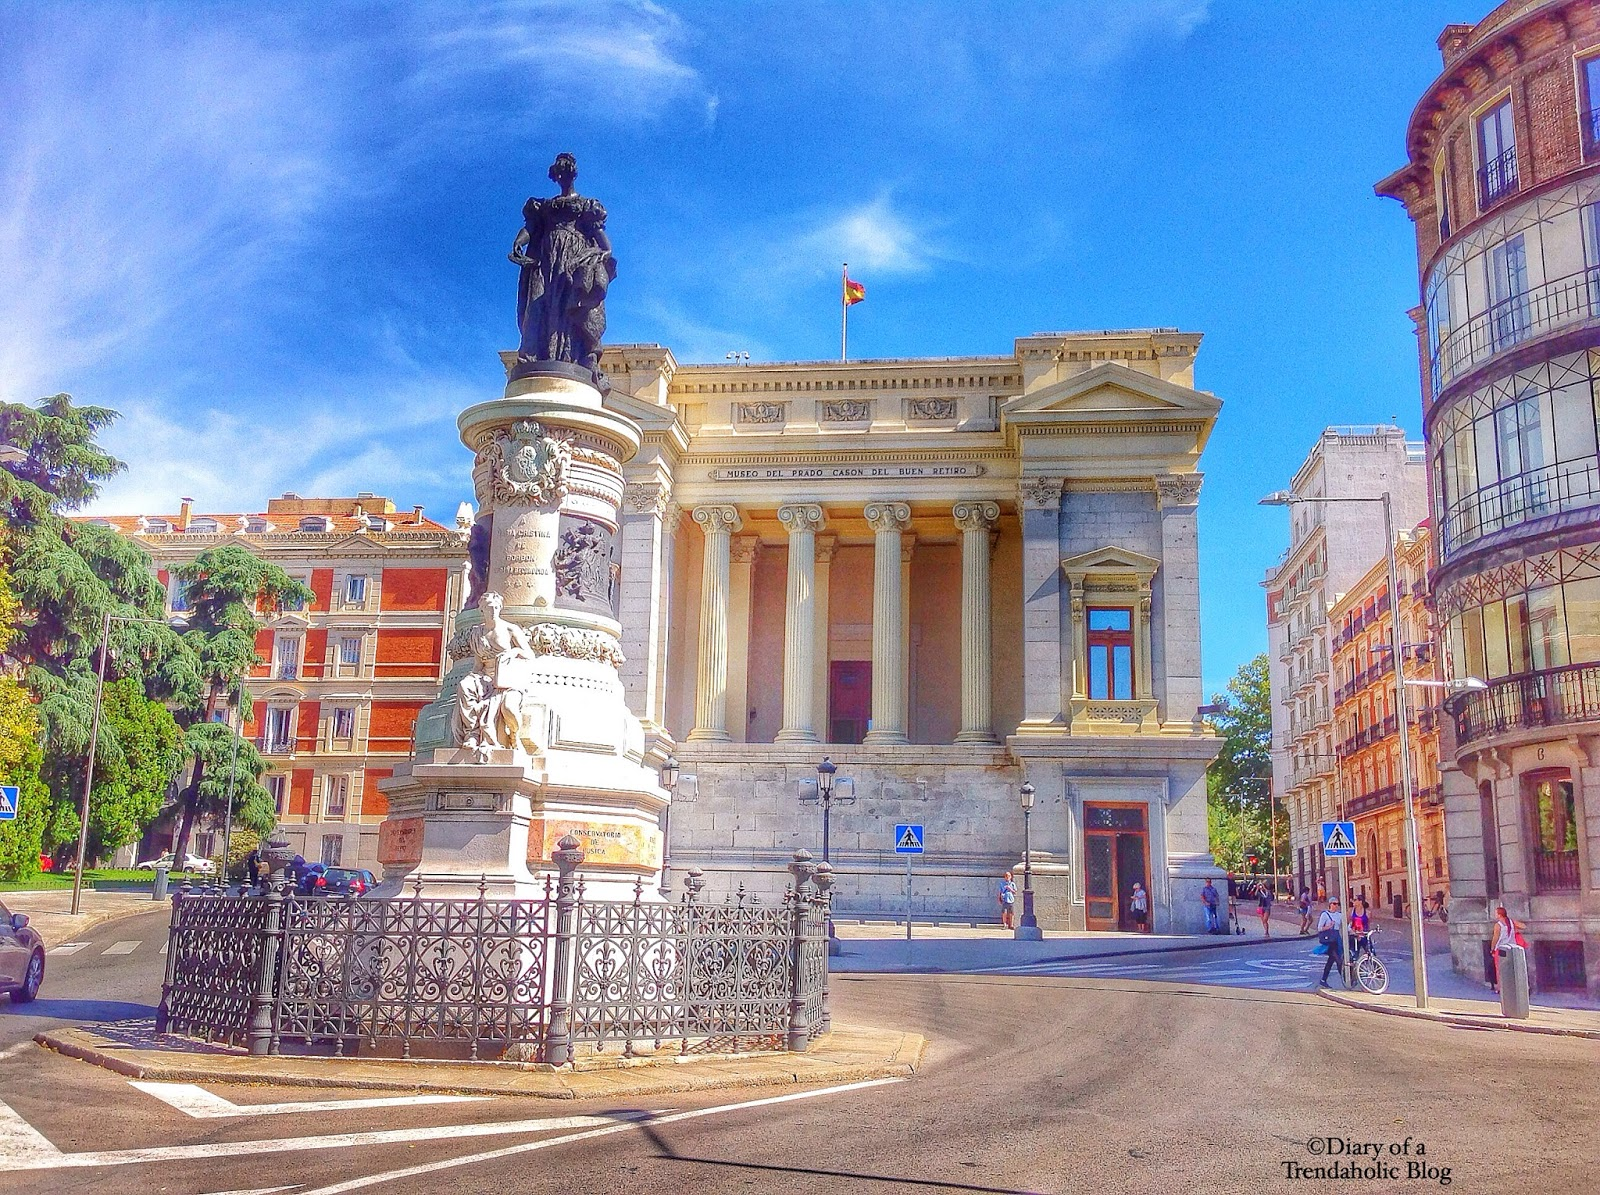 Diary of a Trendaholic : Madrid Spain Travel Guide & Must-See Attractions